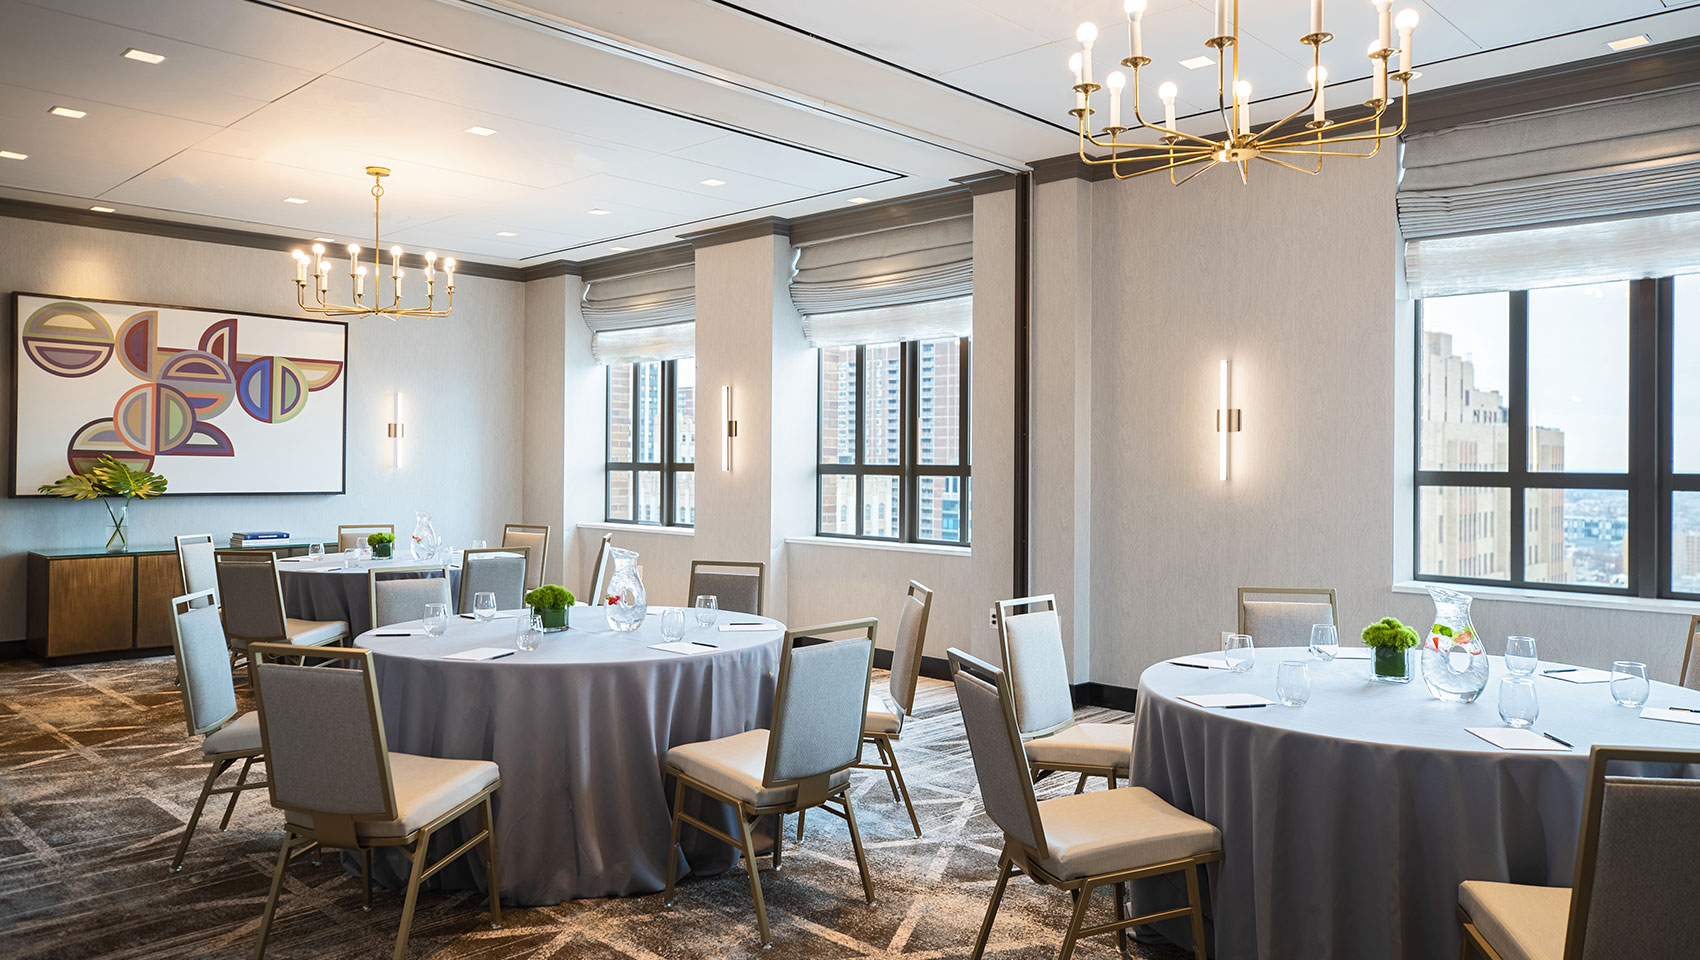 Cret room at Kimpton Hotel Palomar Philadelphia in a rounds meeting set up with multiple round tables that have notepads on top near large sunlit windows overlooking city views